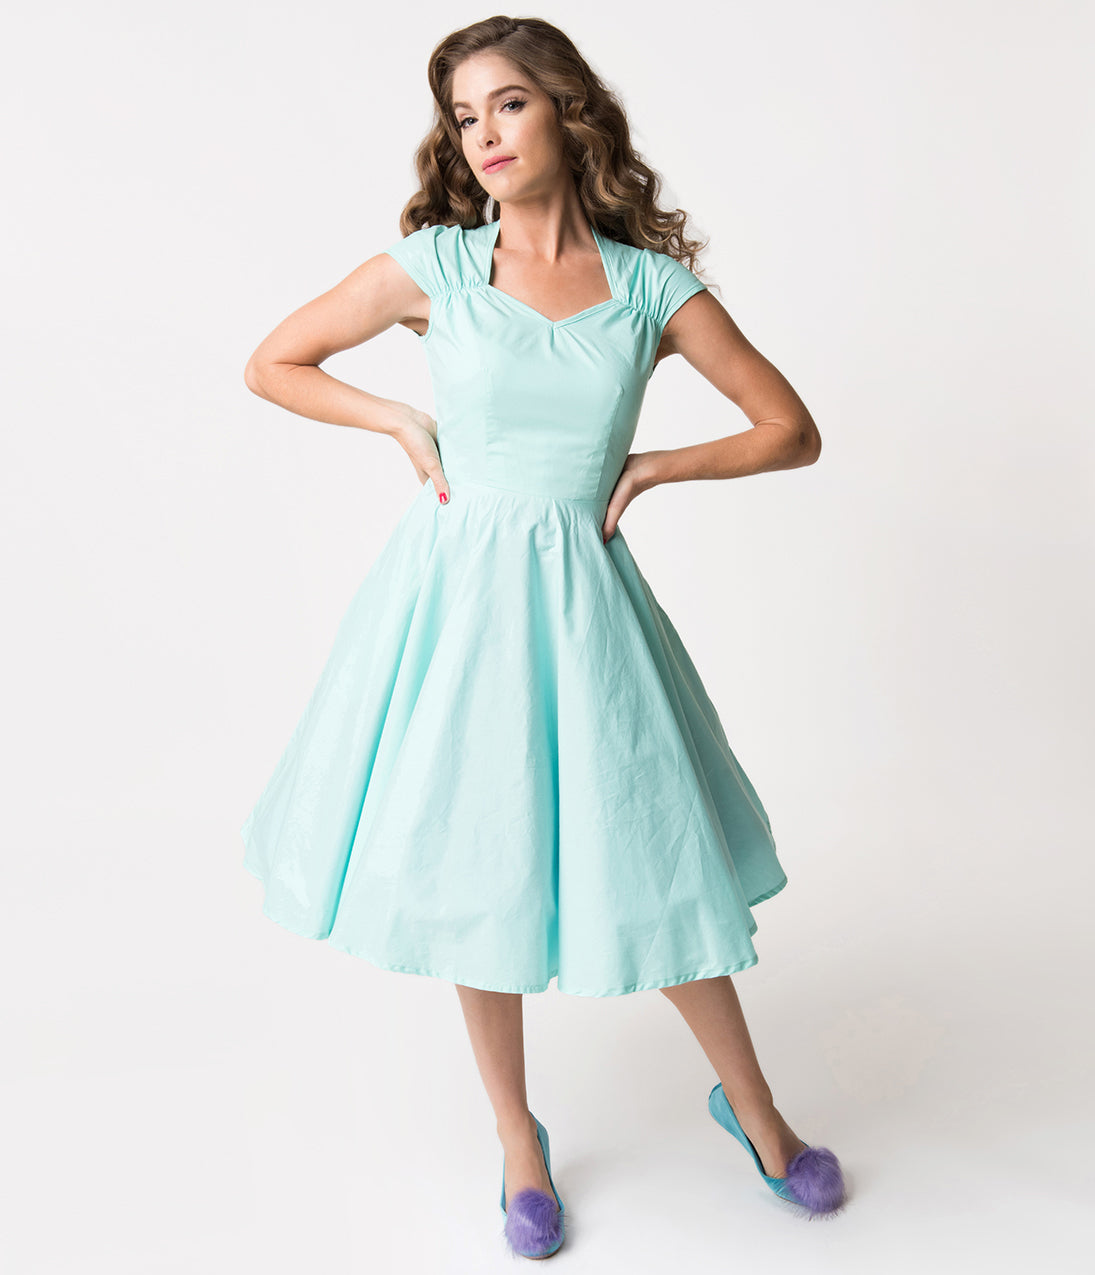 Fifties Dresses : 1950s Style Swing to Wiggle Dresses